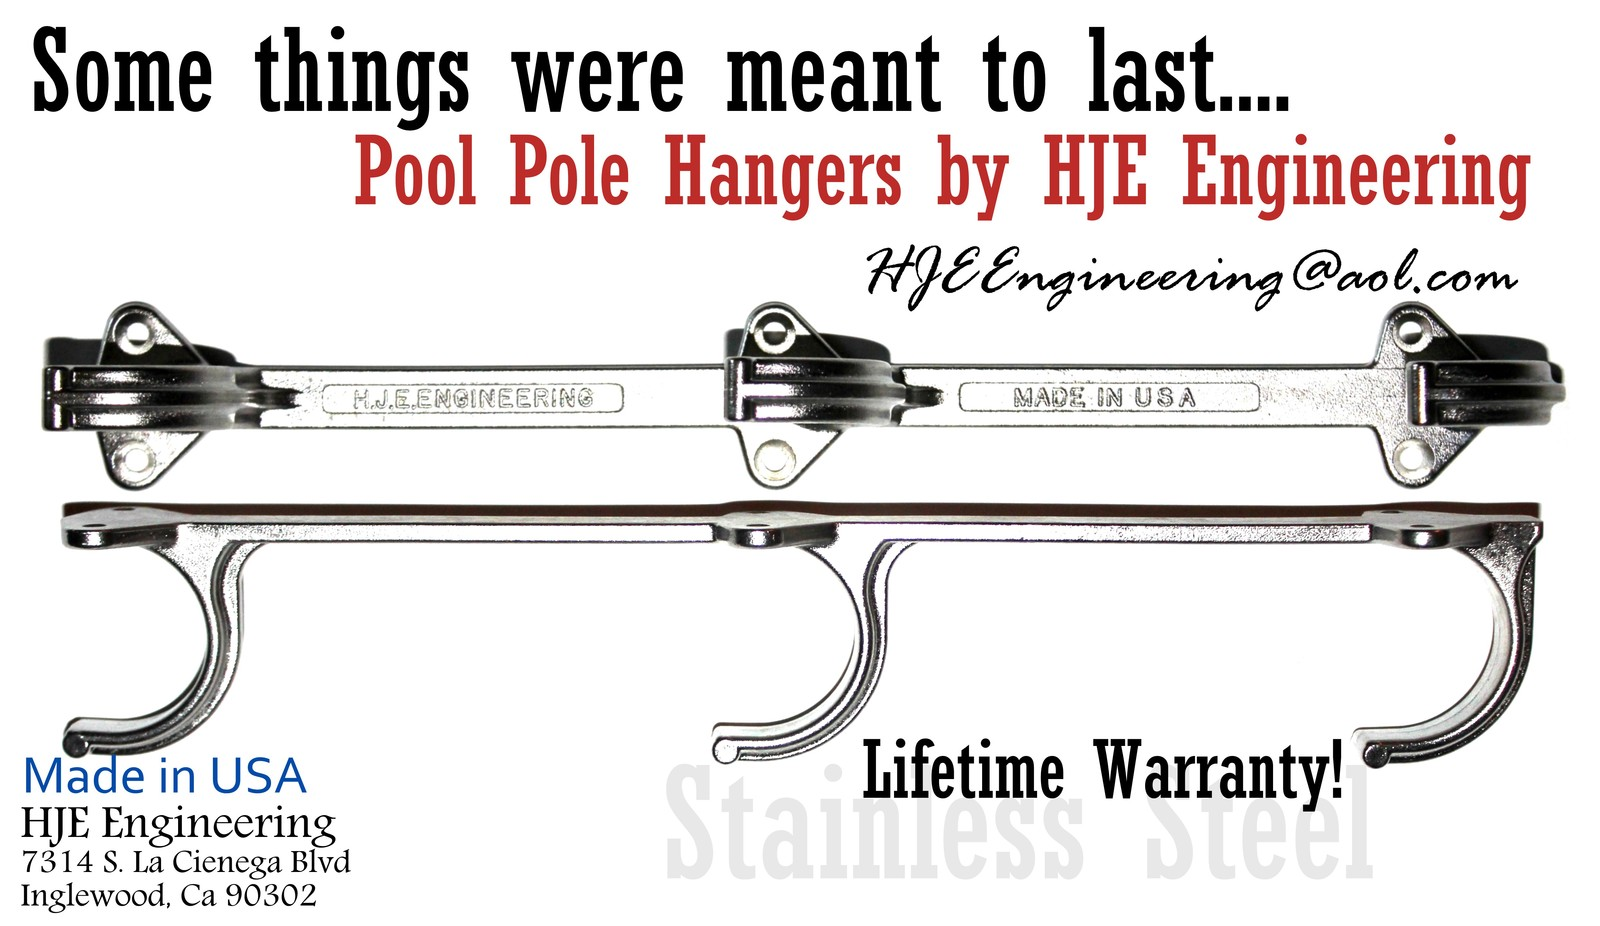 Commercial Pool Pole Hangers by HJE Enginerrings